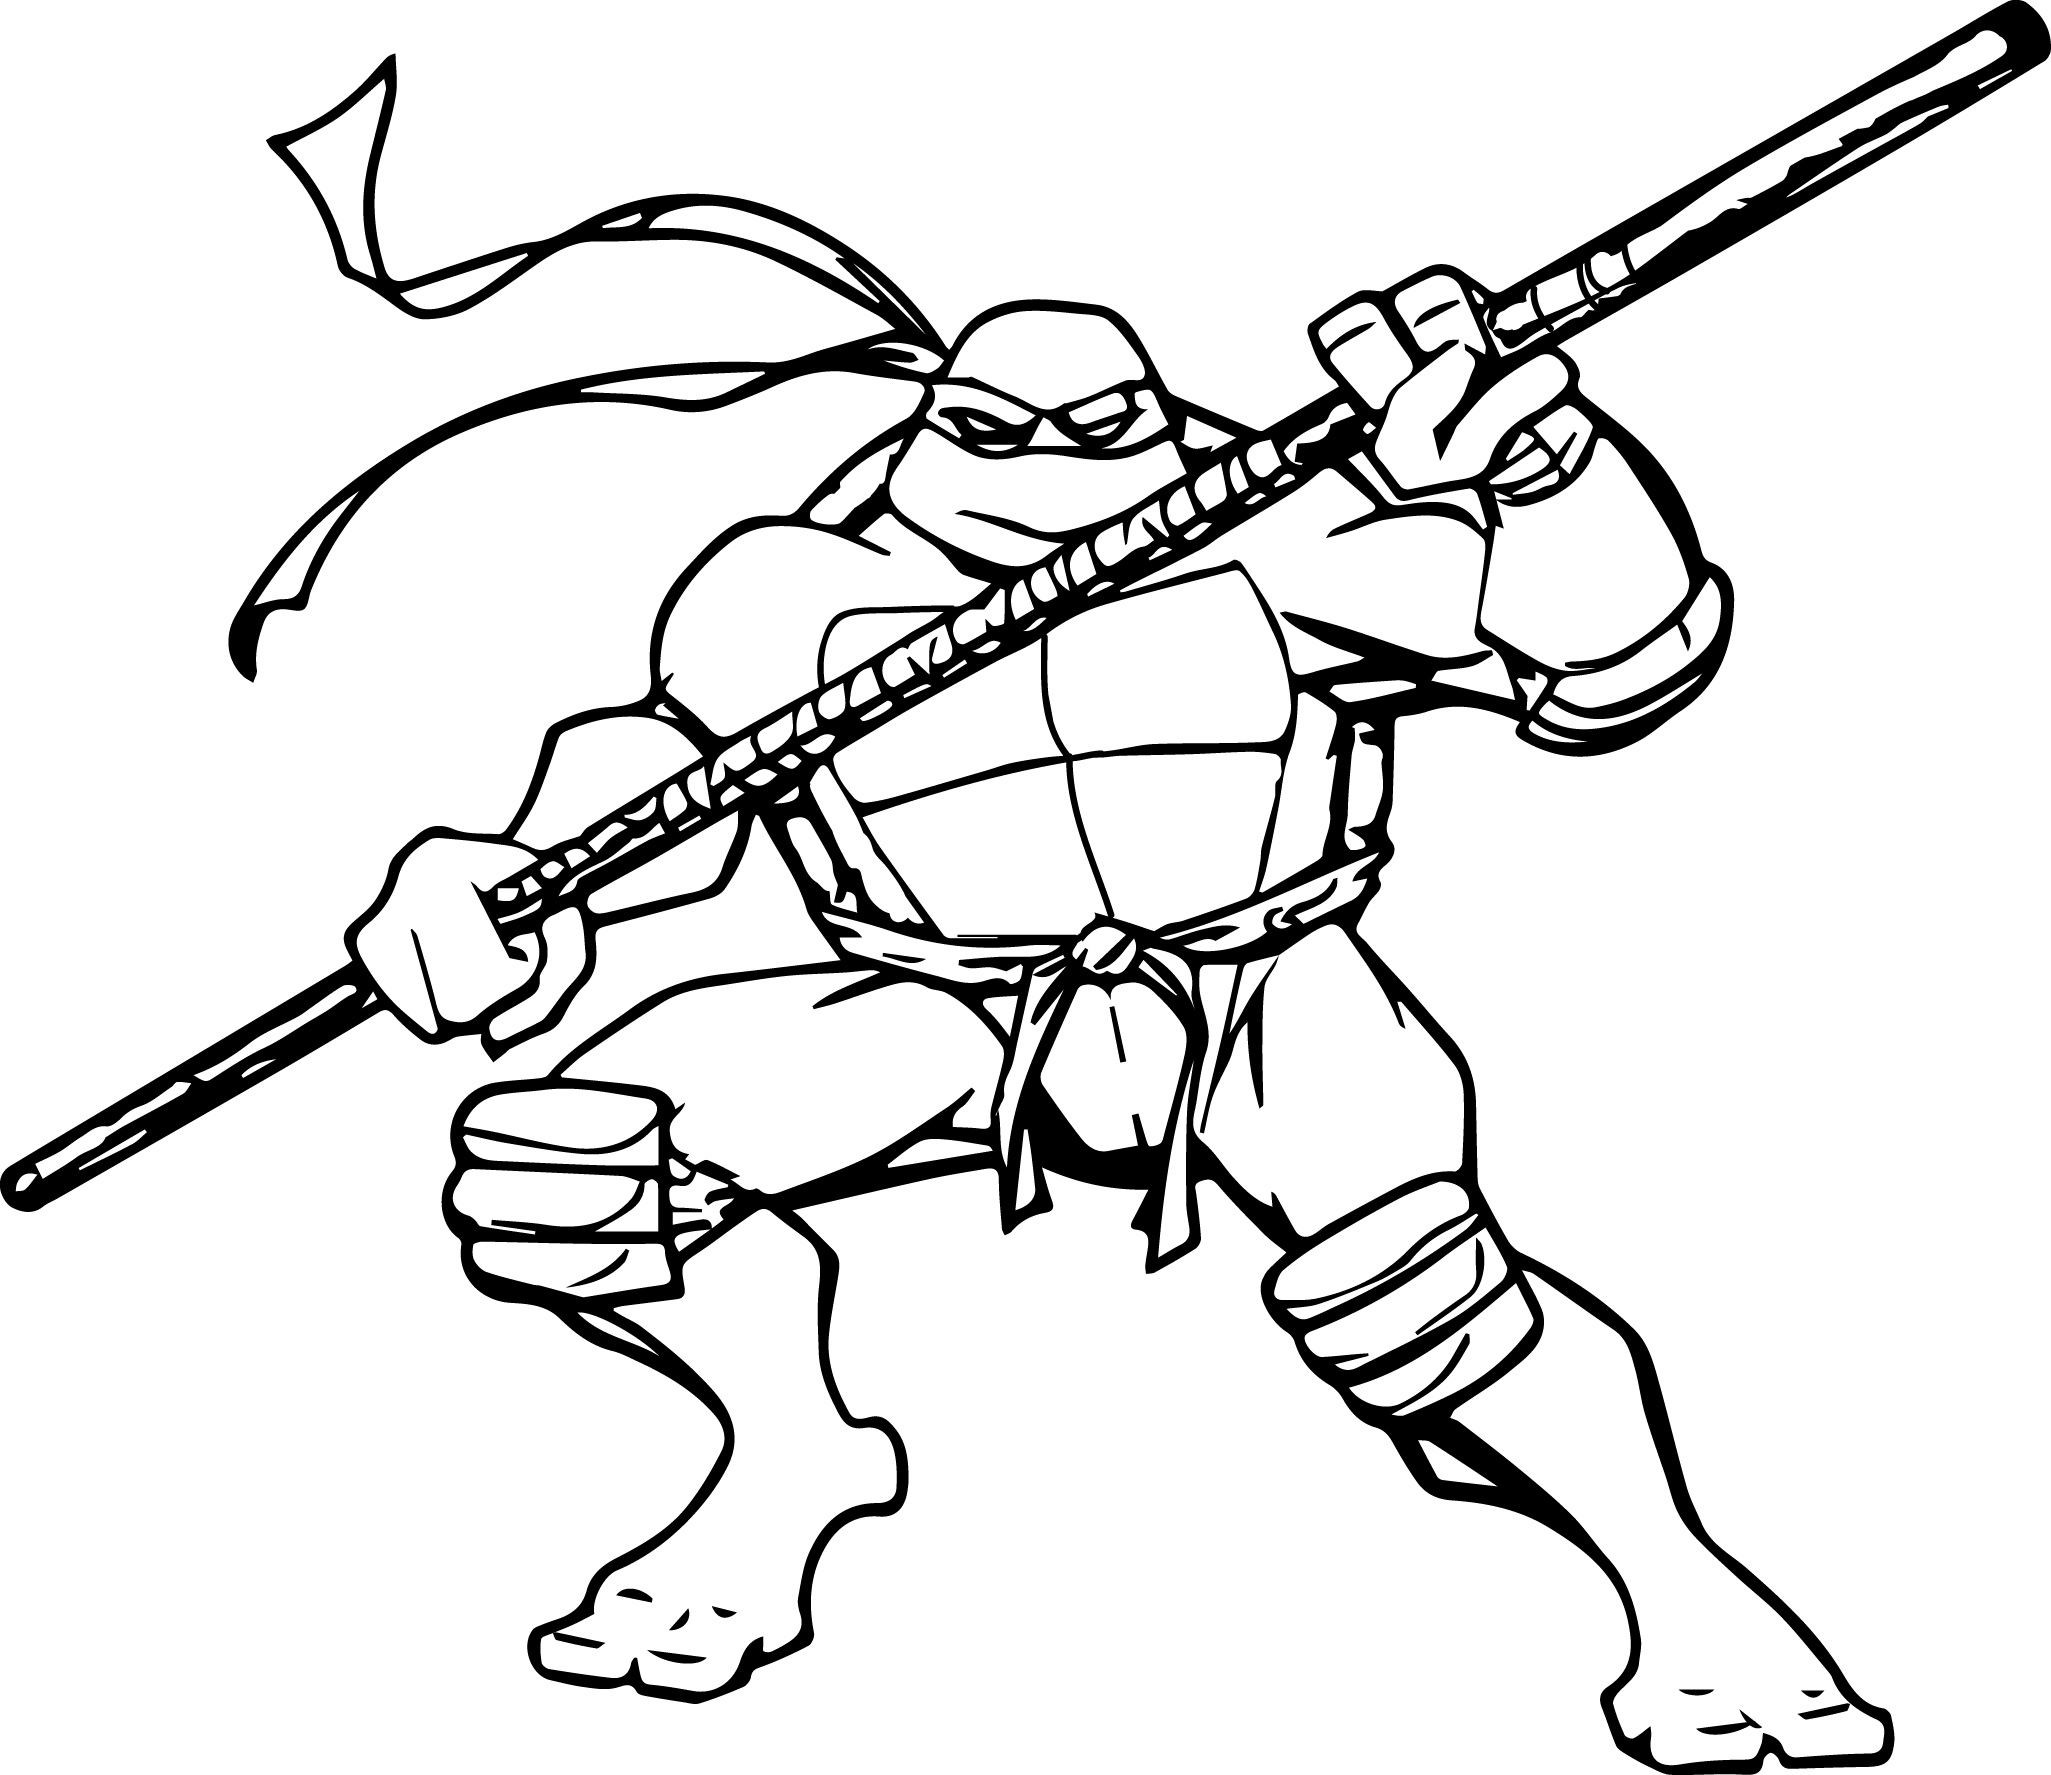 Free Printable Ninja Turtle Coloring Pages at GetDrawings ...